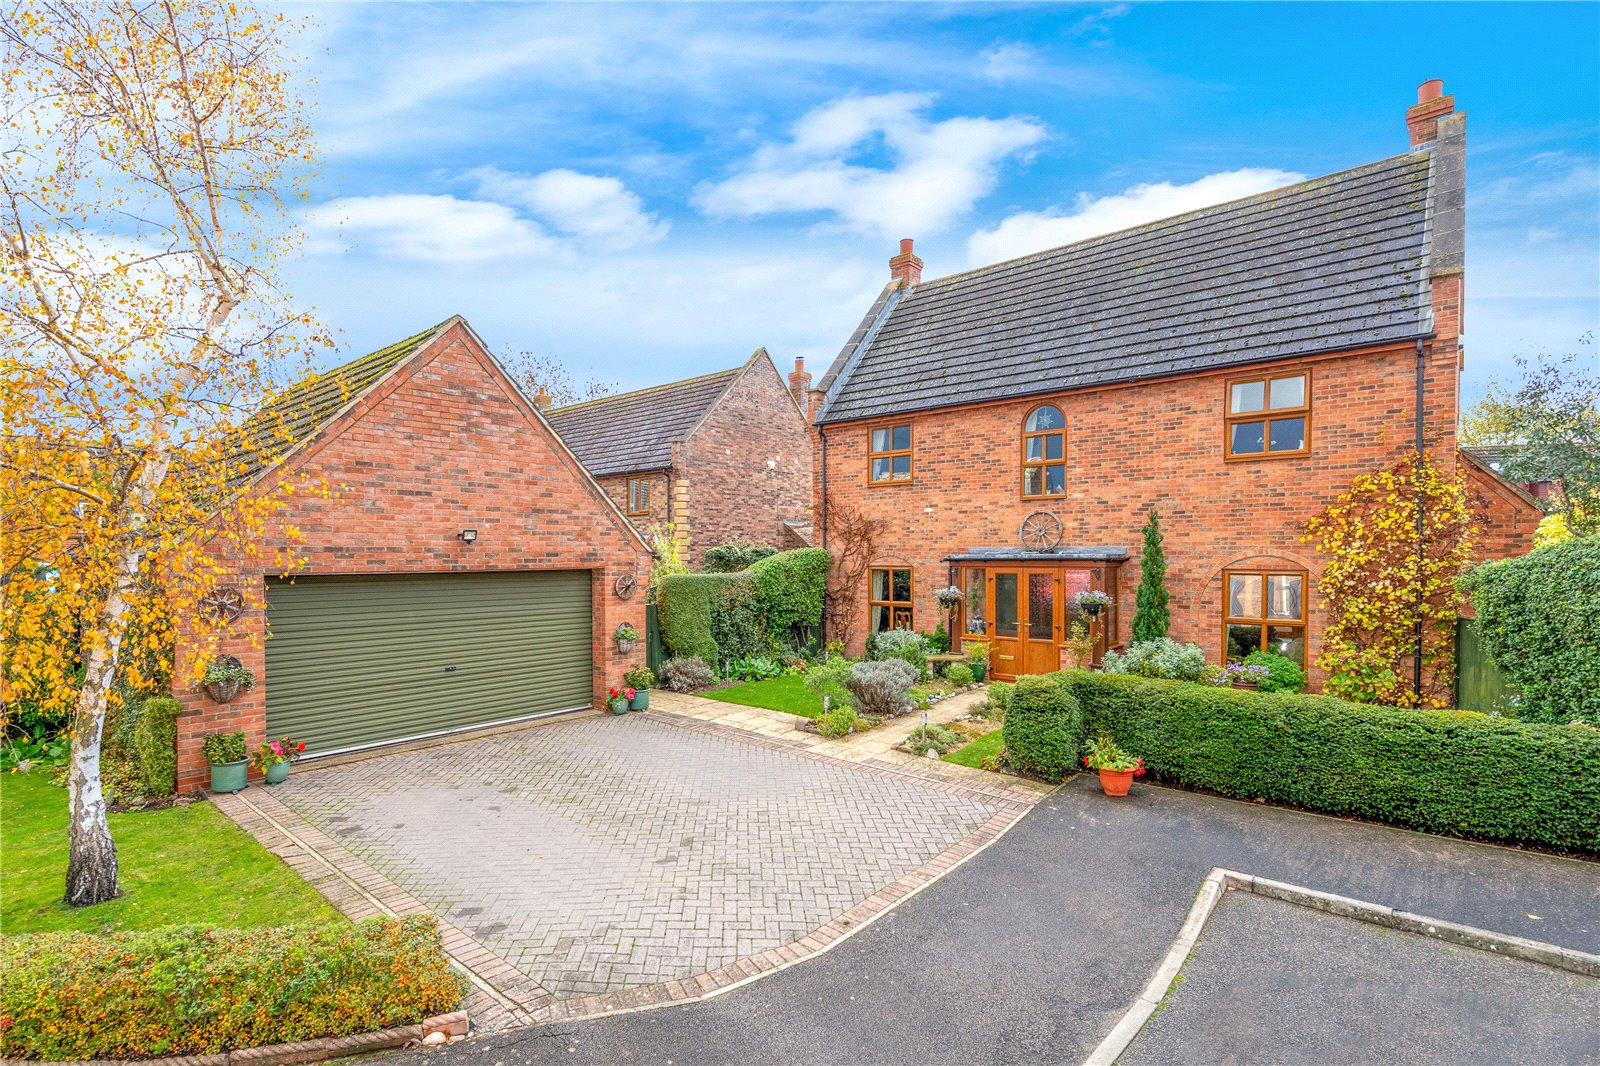 contemporary red brick family home in Bassingham, Lincolnshire